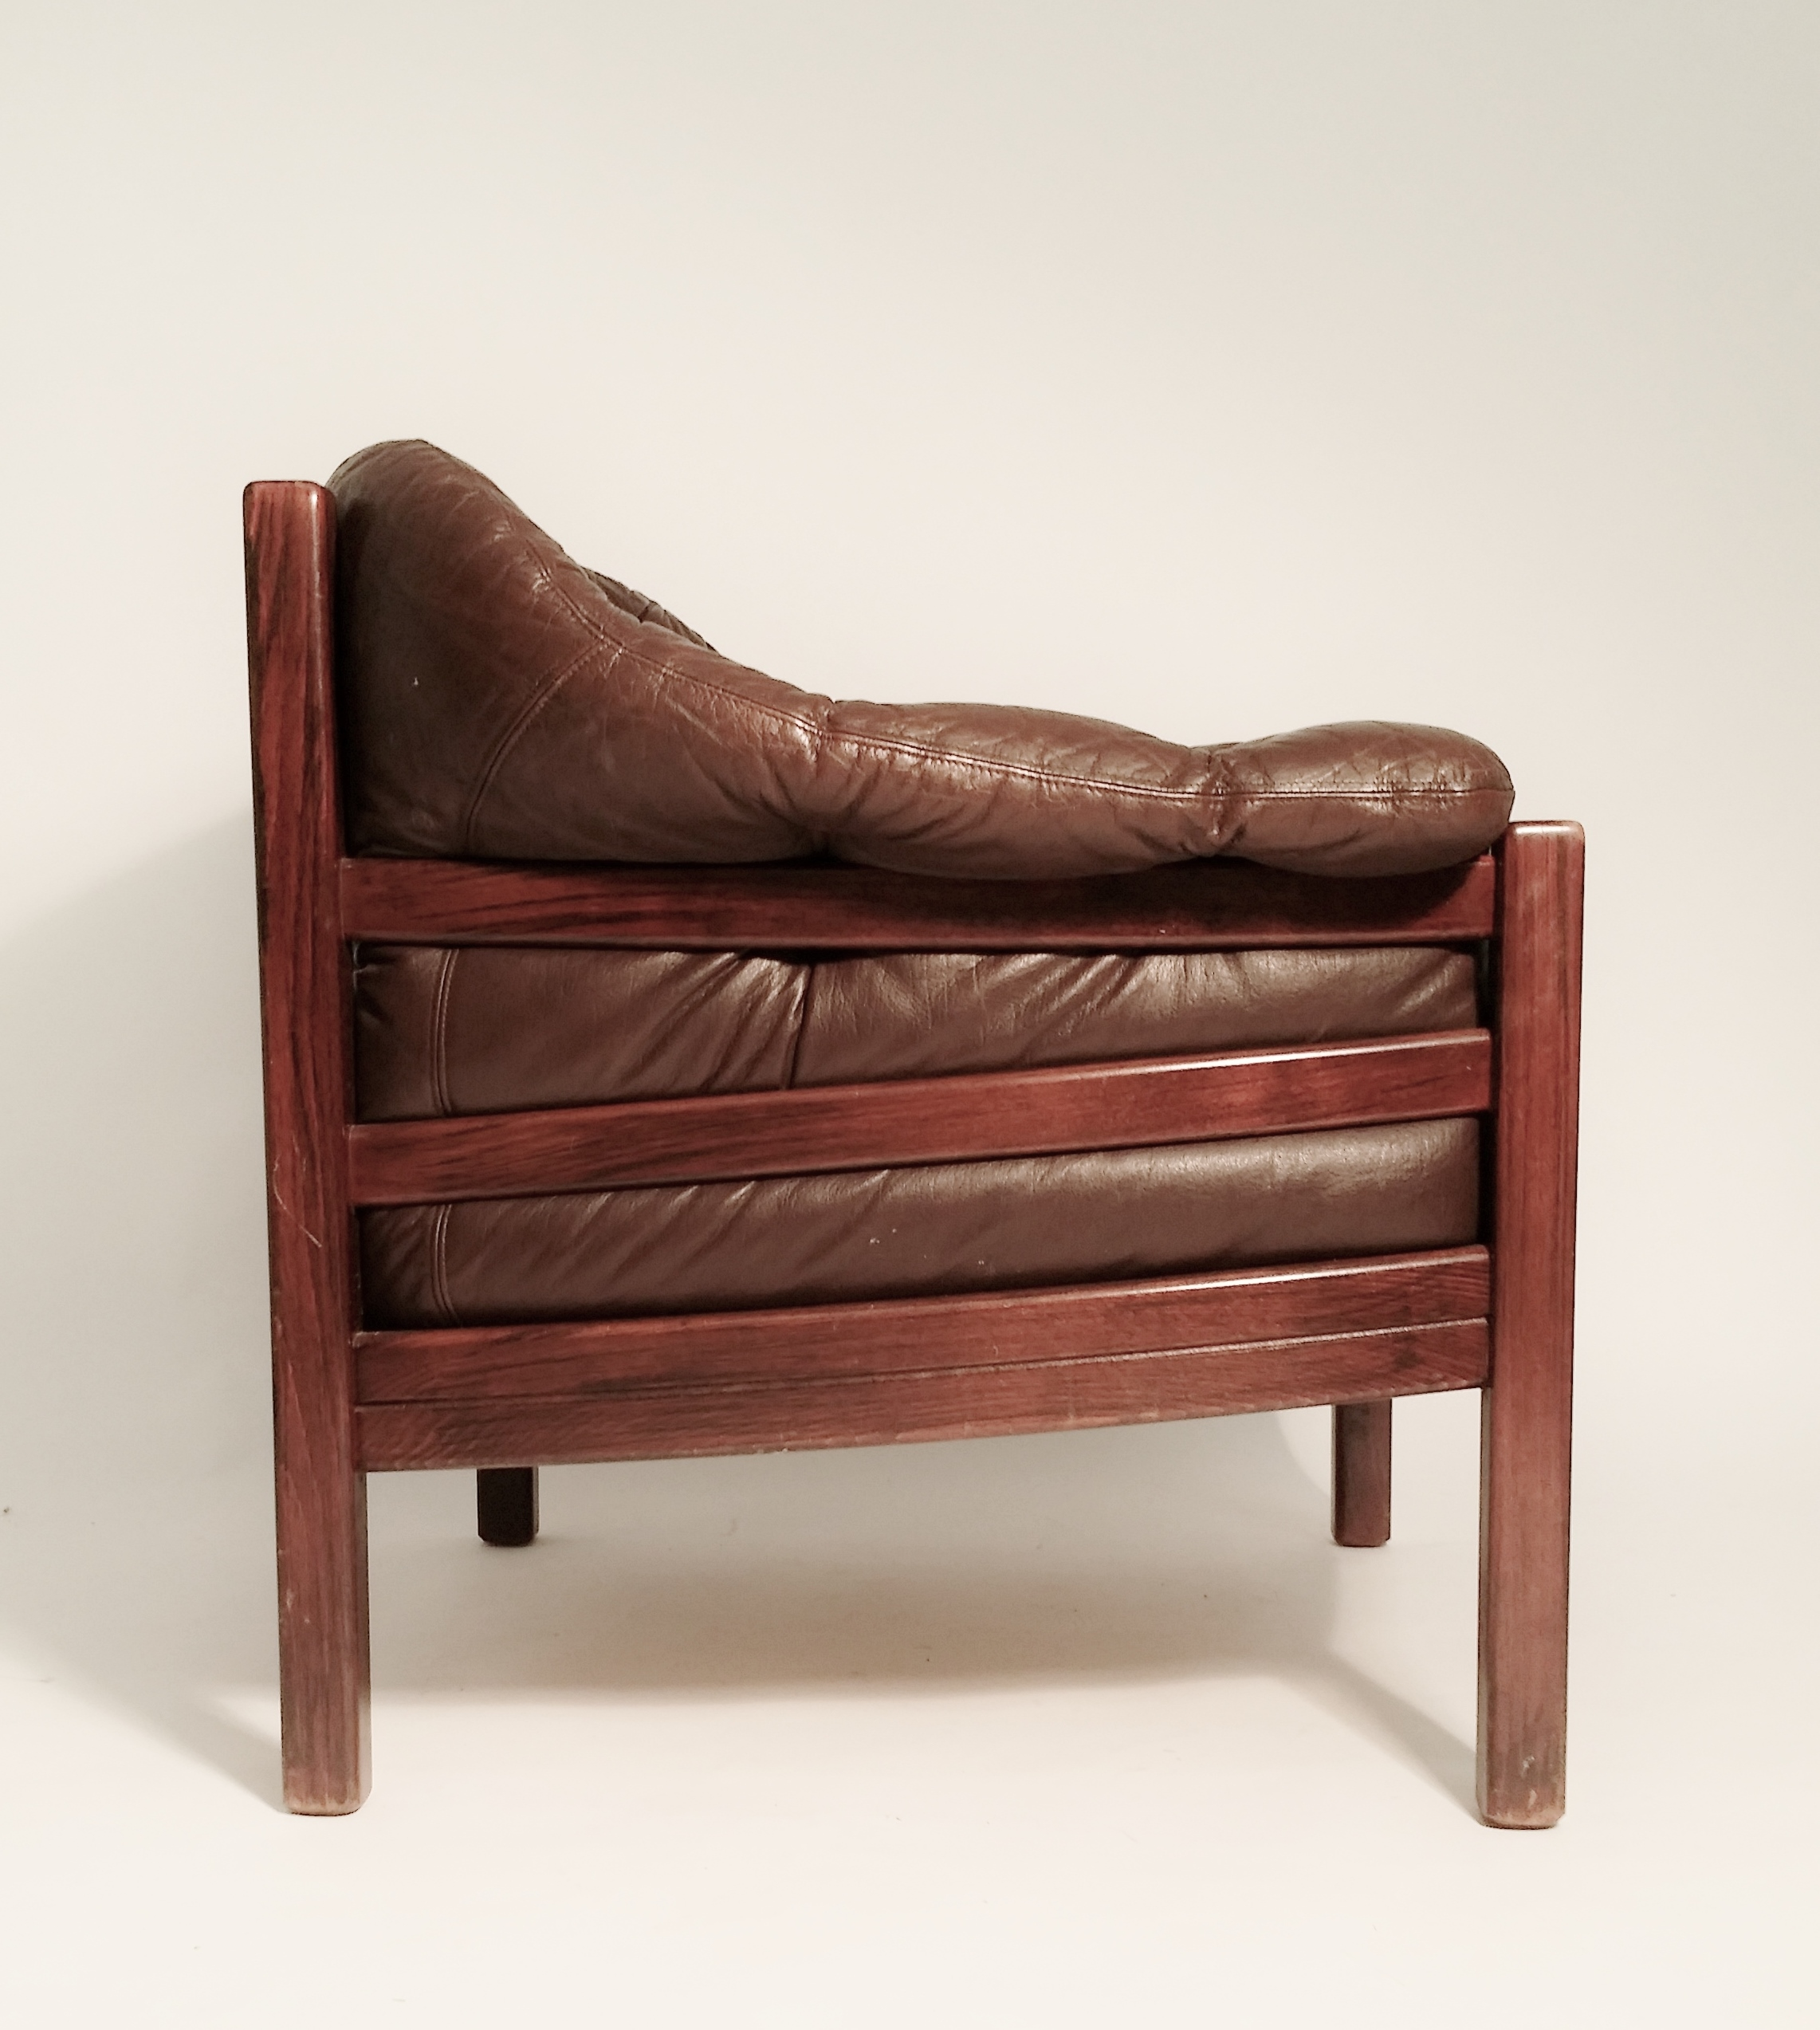 Arne Norell Leather sofa